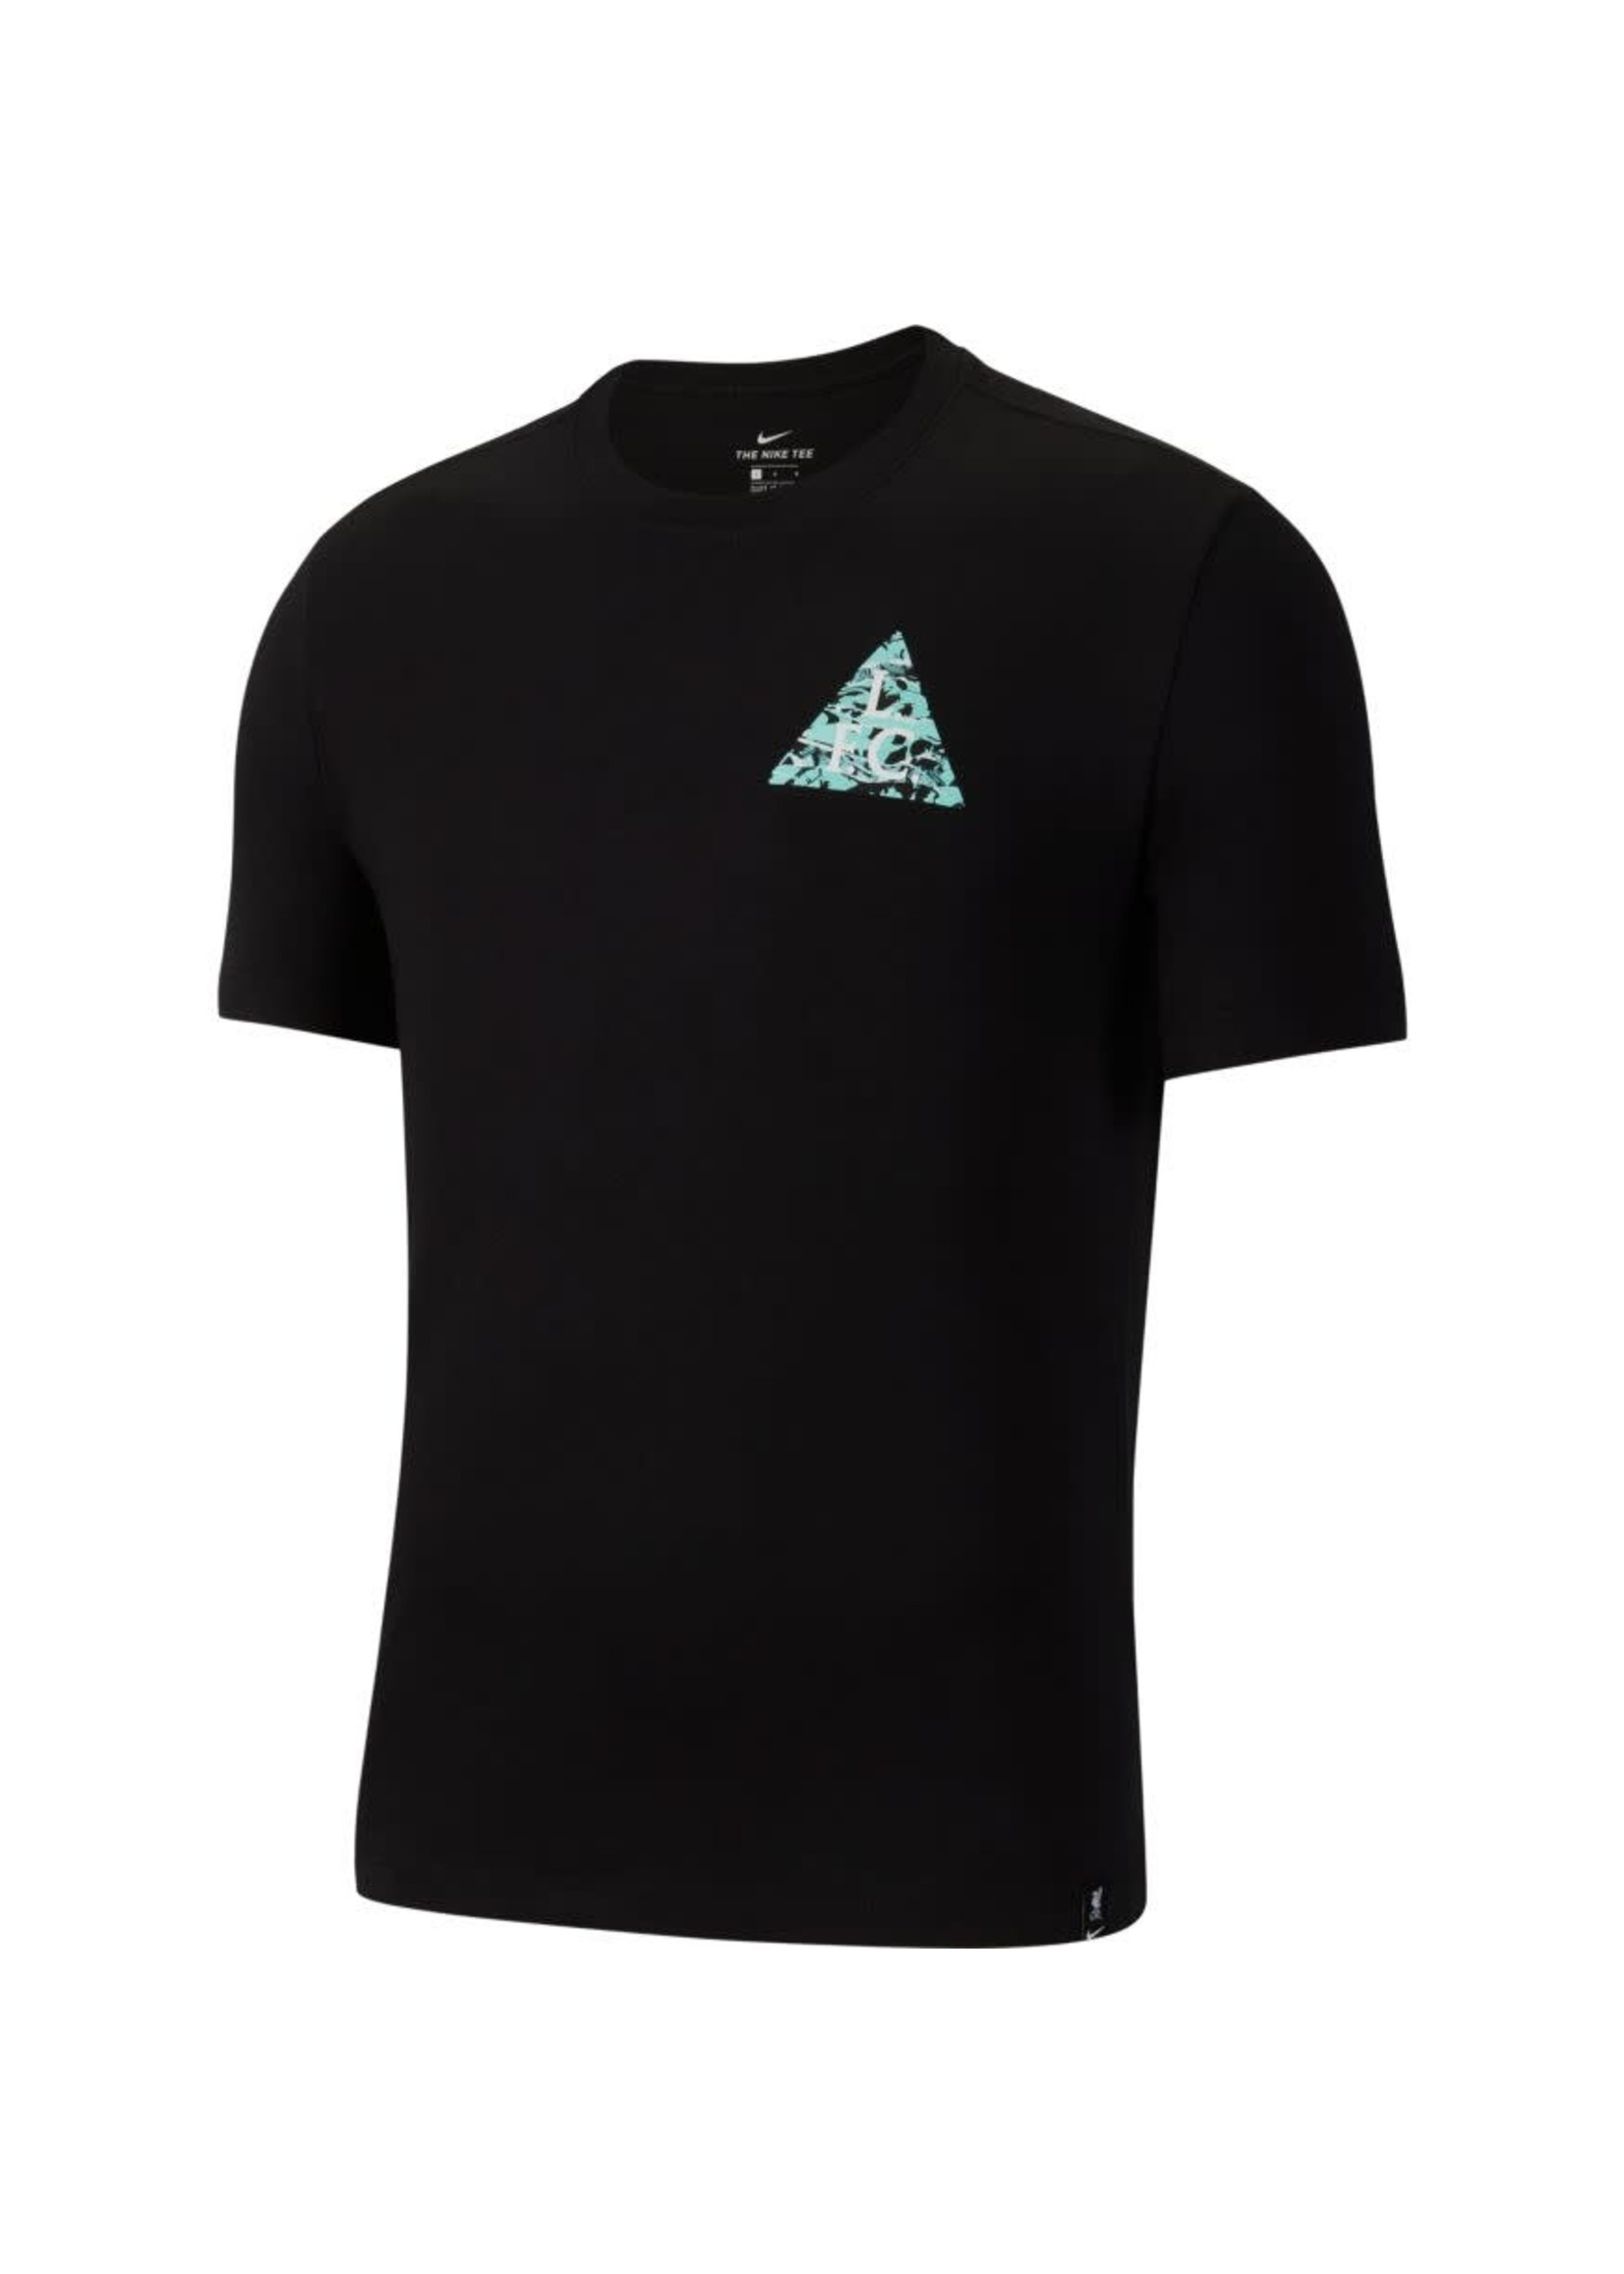 Nike Liverpool T-Shirt - Black/Blue